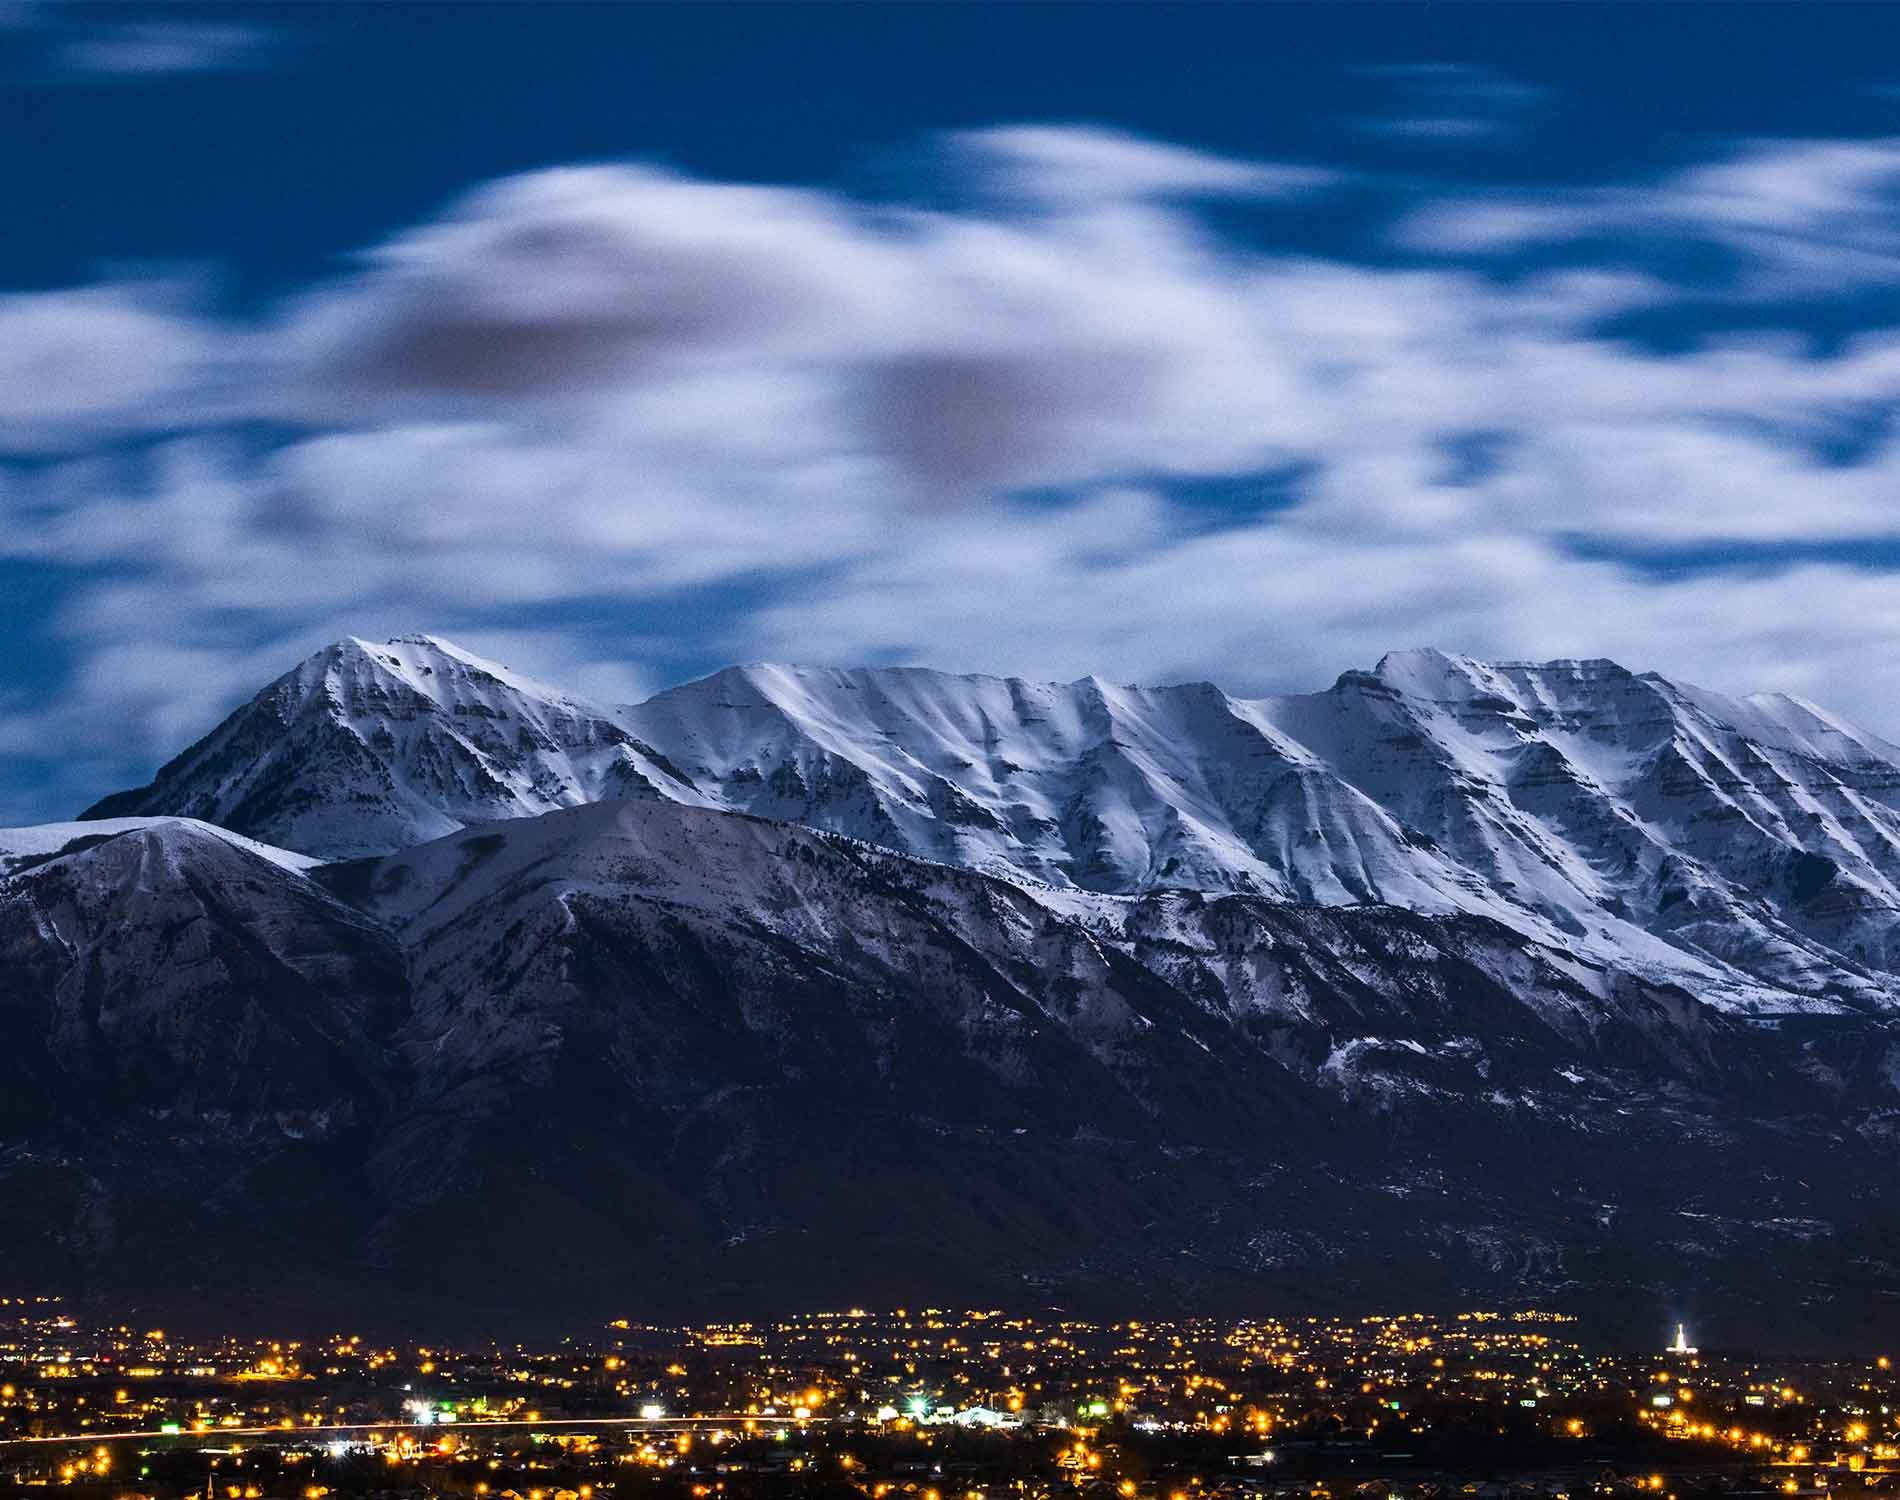 /-/media/images/website/background-images/offices/lehi/lehi.ashx